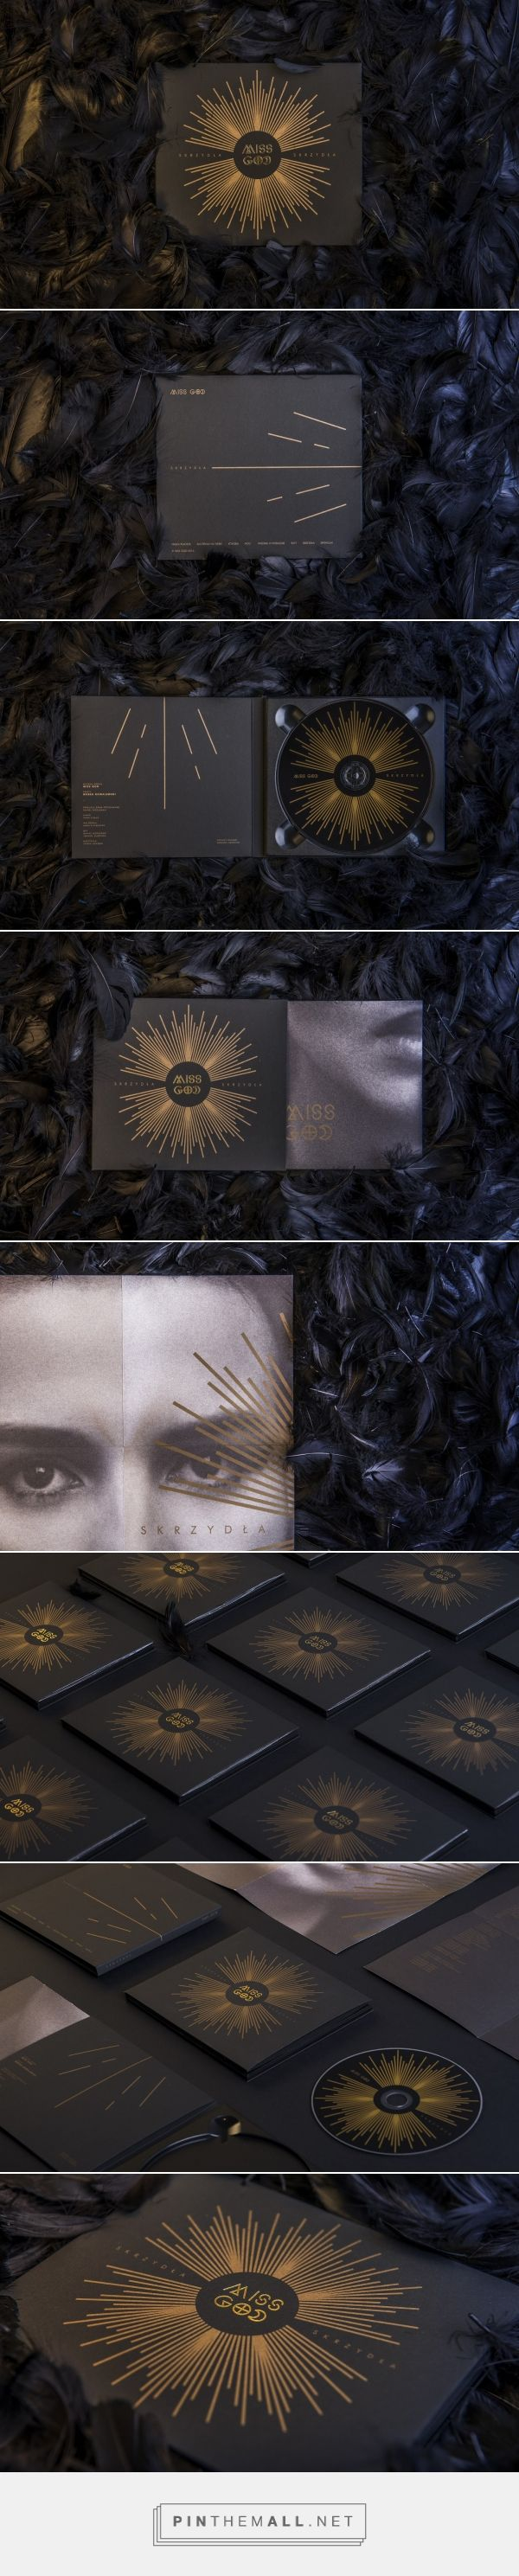 Miss God | Skrzydła / Wings - Packaging of the World - Creative Package Design Gallery - http://www.packagingoftheworld.com/2017/03/miss-god-skrzyda-wings.html